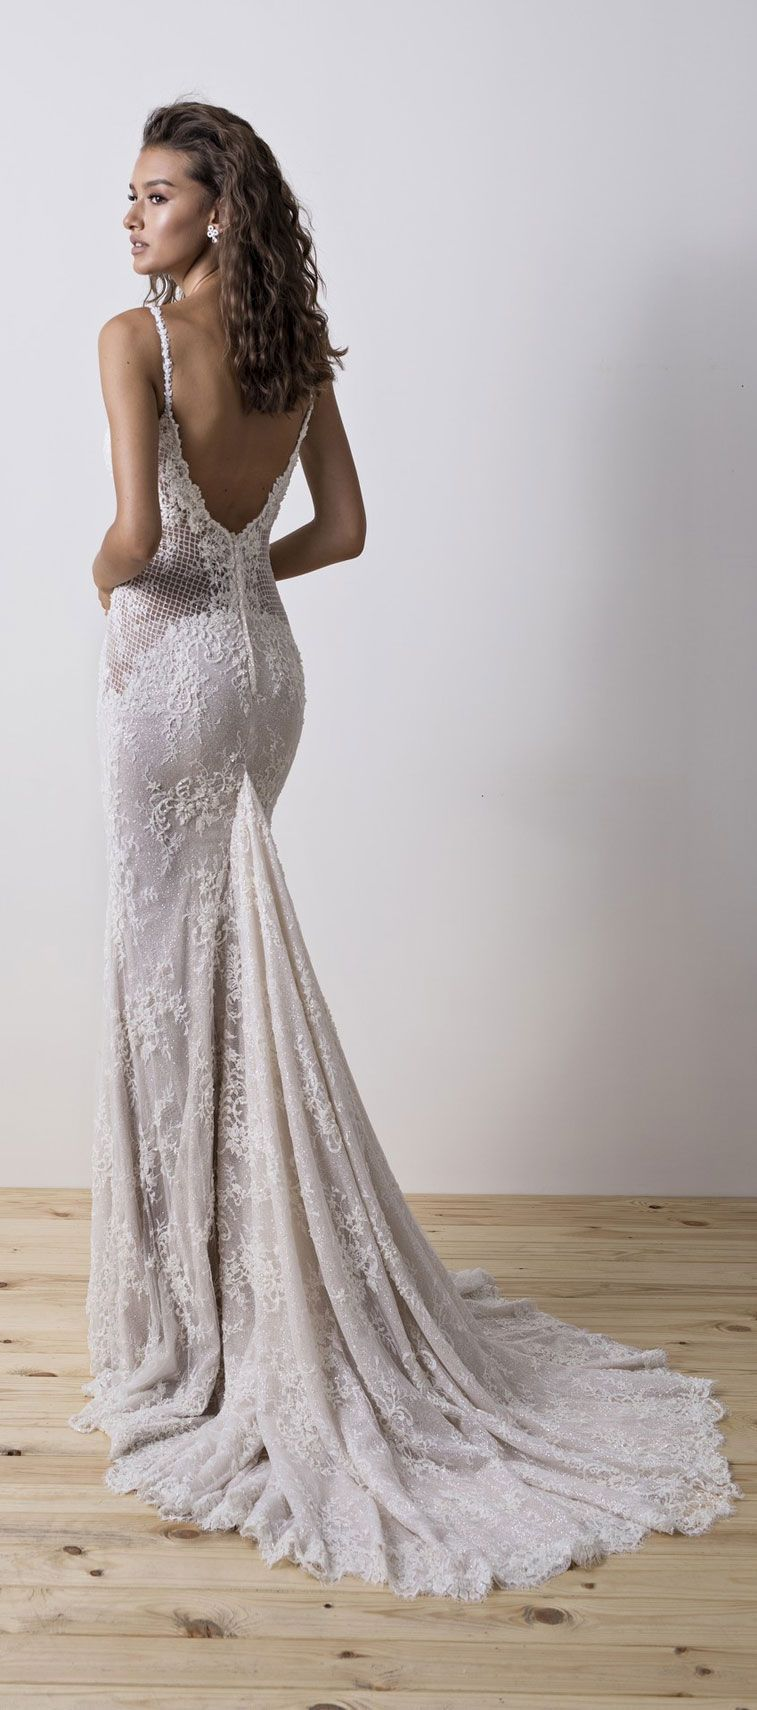 Spaghetti straps sweetheart neckline fit and flare wedding